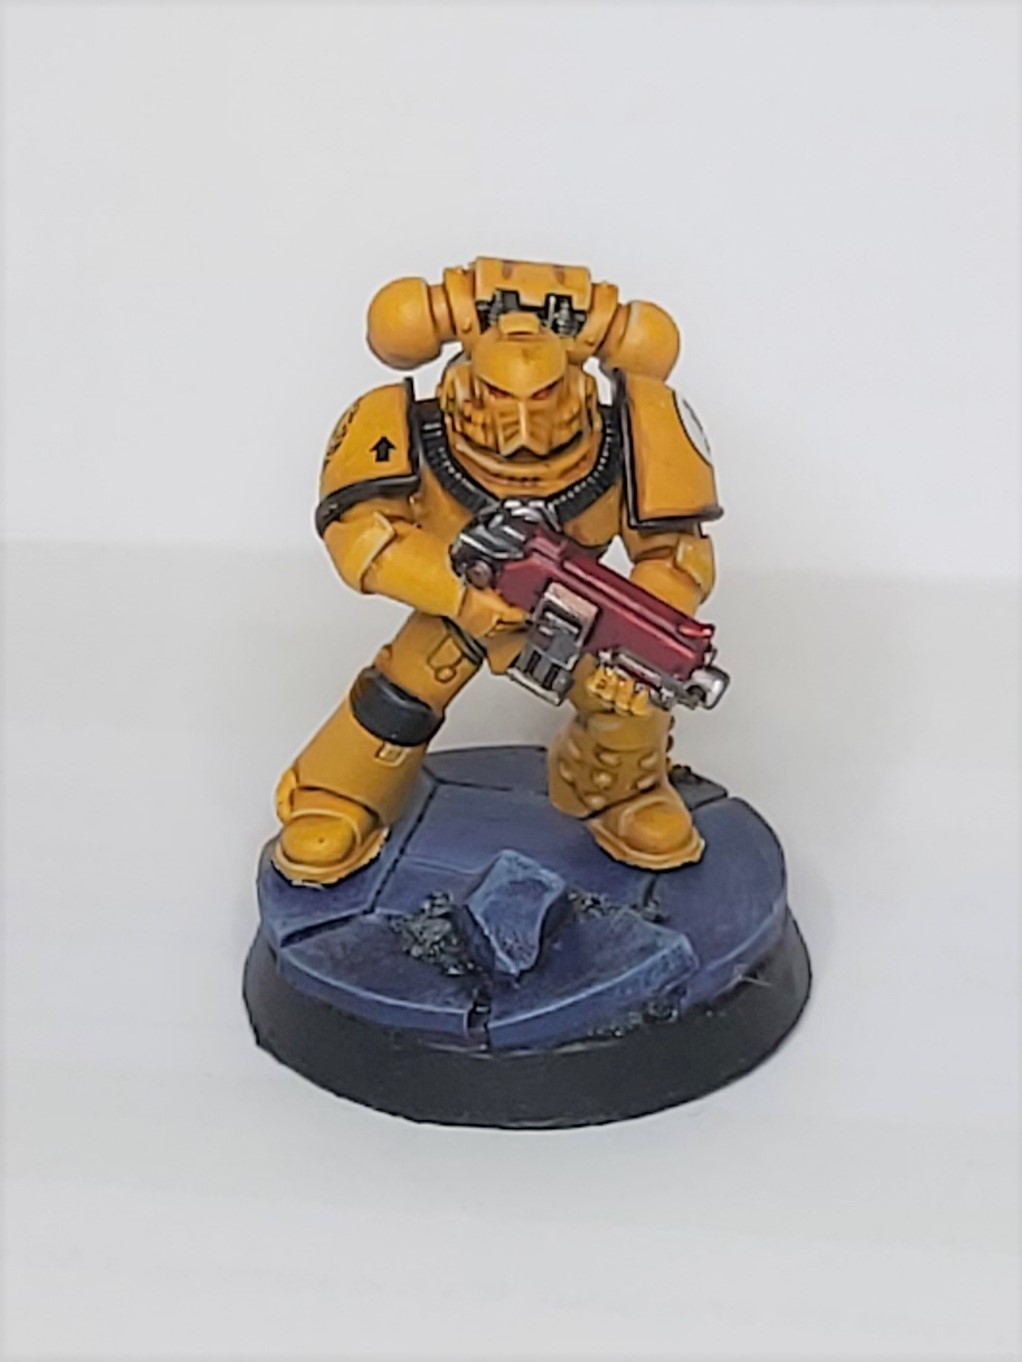 Model imperial fist, a space marine painted yellow and mounted on a sculpted base of blue rubble